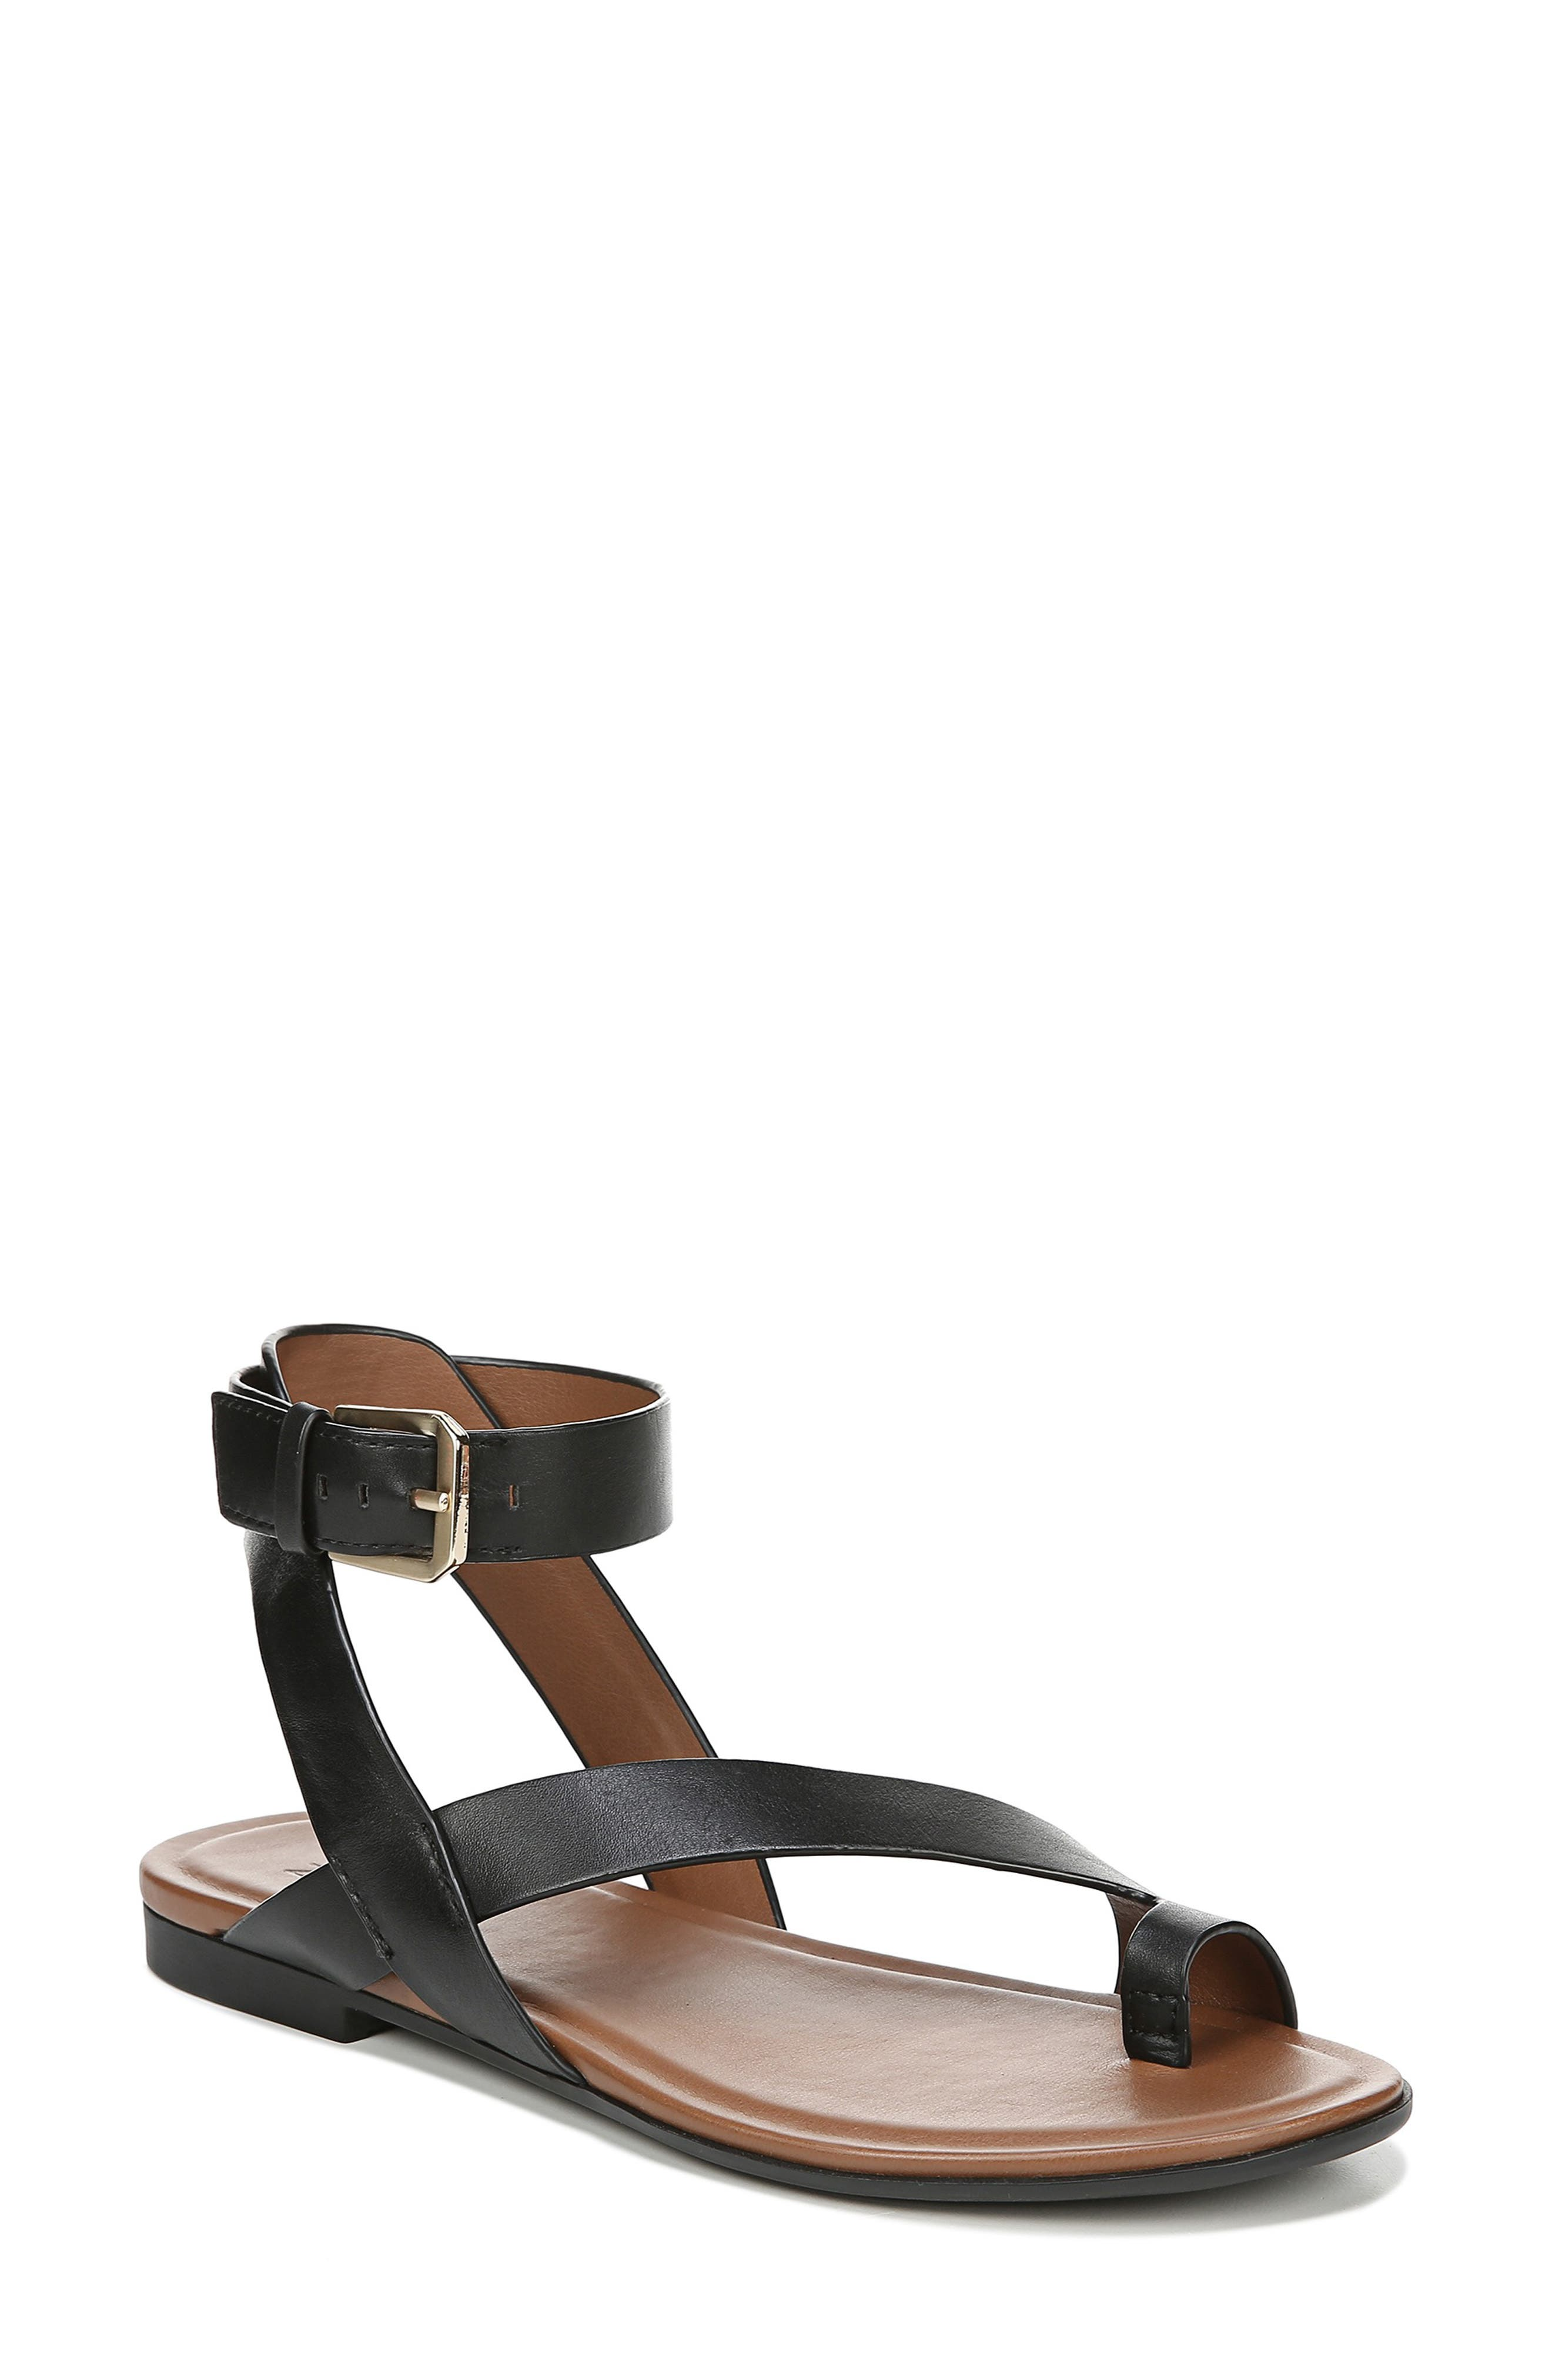 NATURALIZER, Tally Ankle Strap Sandal, Main thumbnail 1, color, BLACK LEATHER